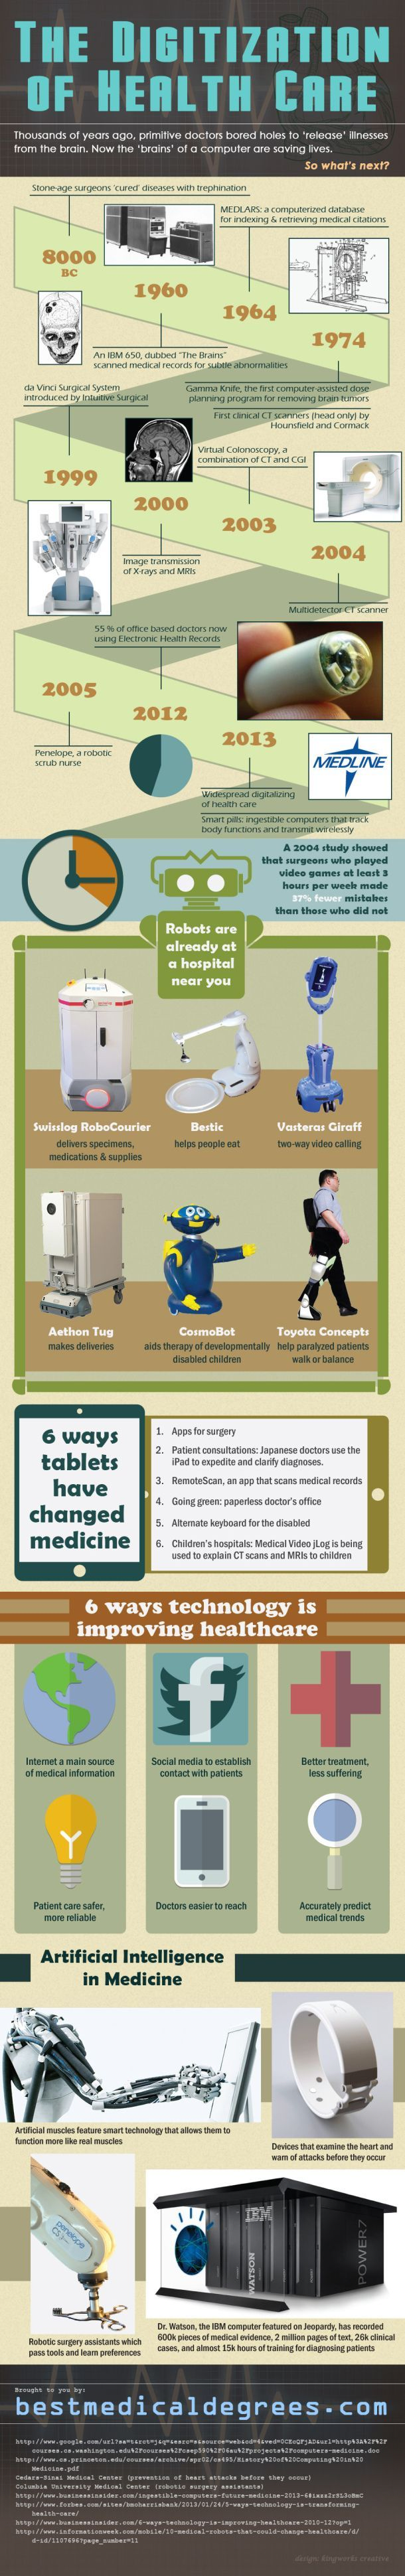 The Digitization of Health Care [INFOGRAPHIC] #digitization#healthcare